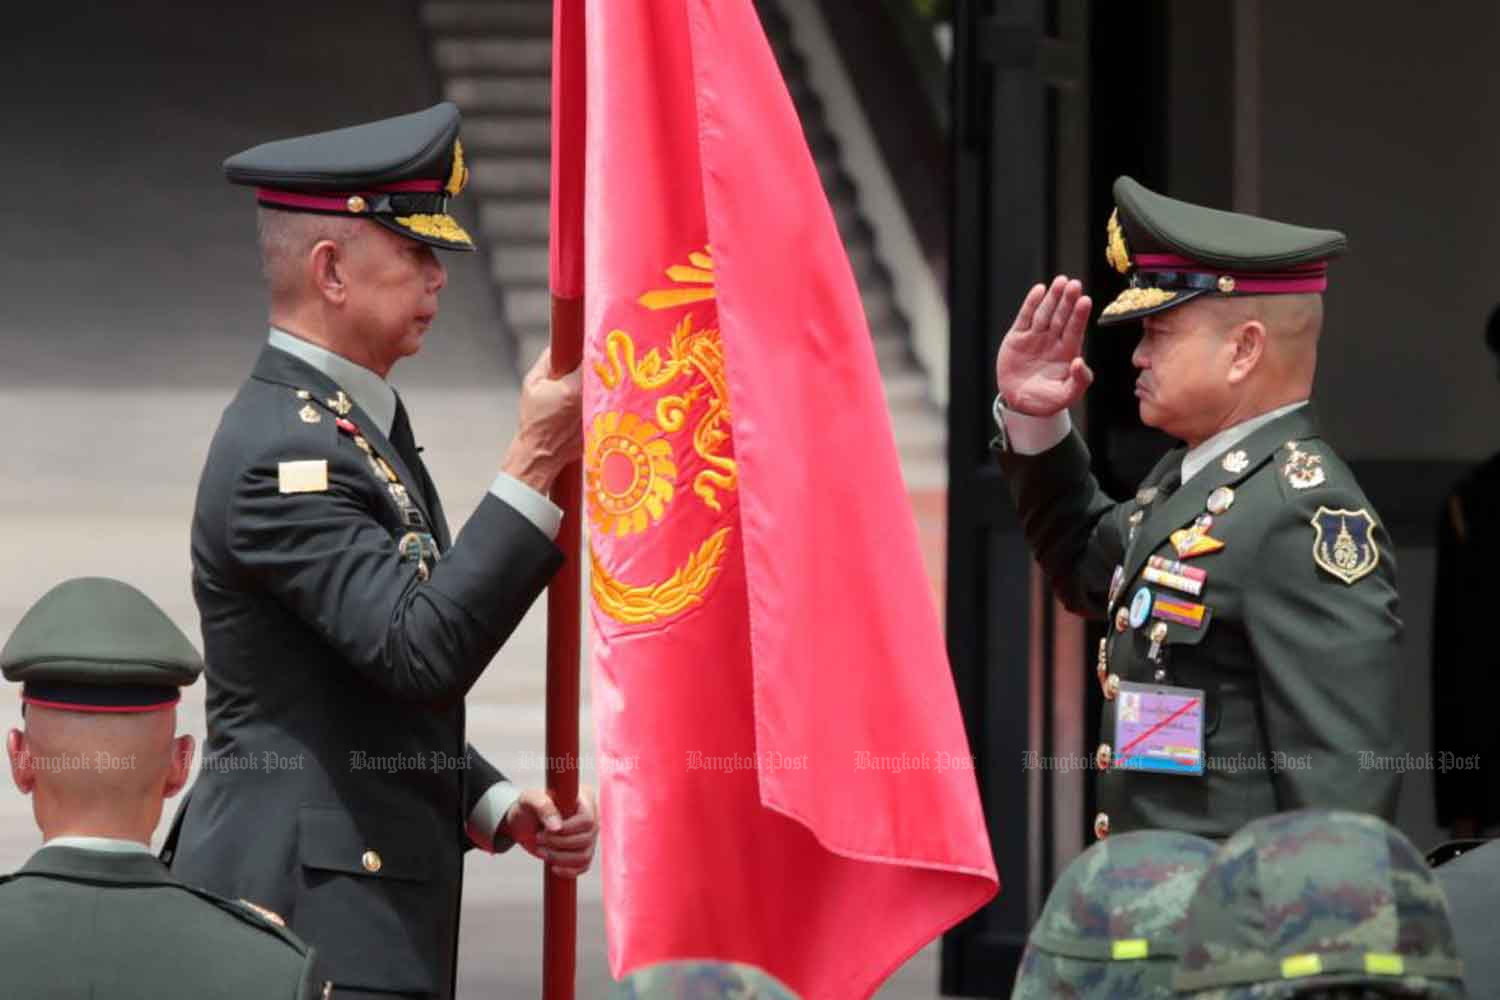 Outgoing army chief Apirat Kongsompong, left, hands over authority to his successor, Gen Narongphan Jitkaewtae, at the army headquarters. (Photo: Chanat Katanyu)